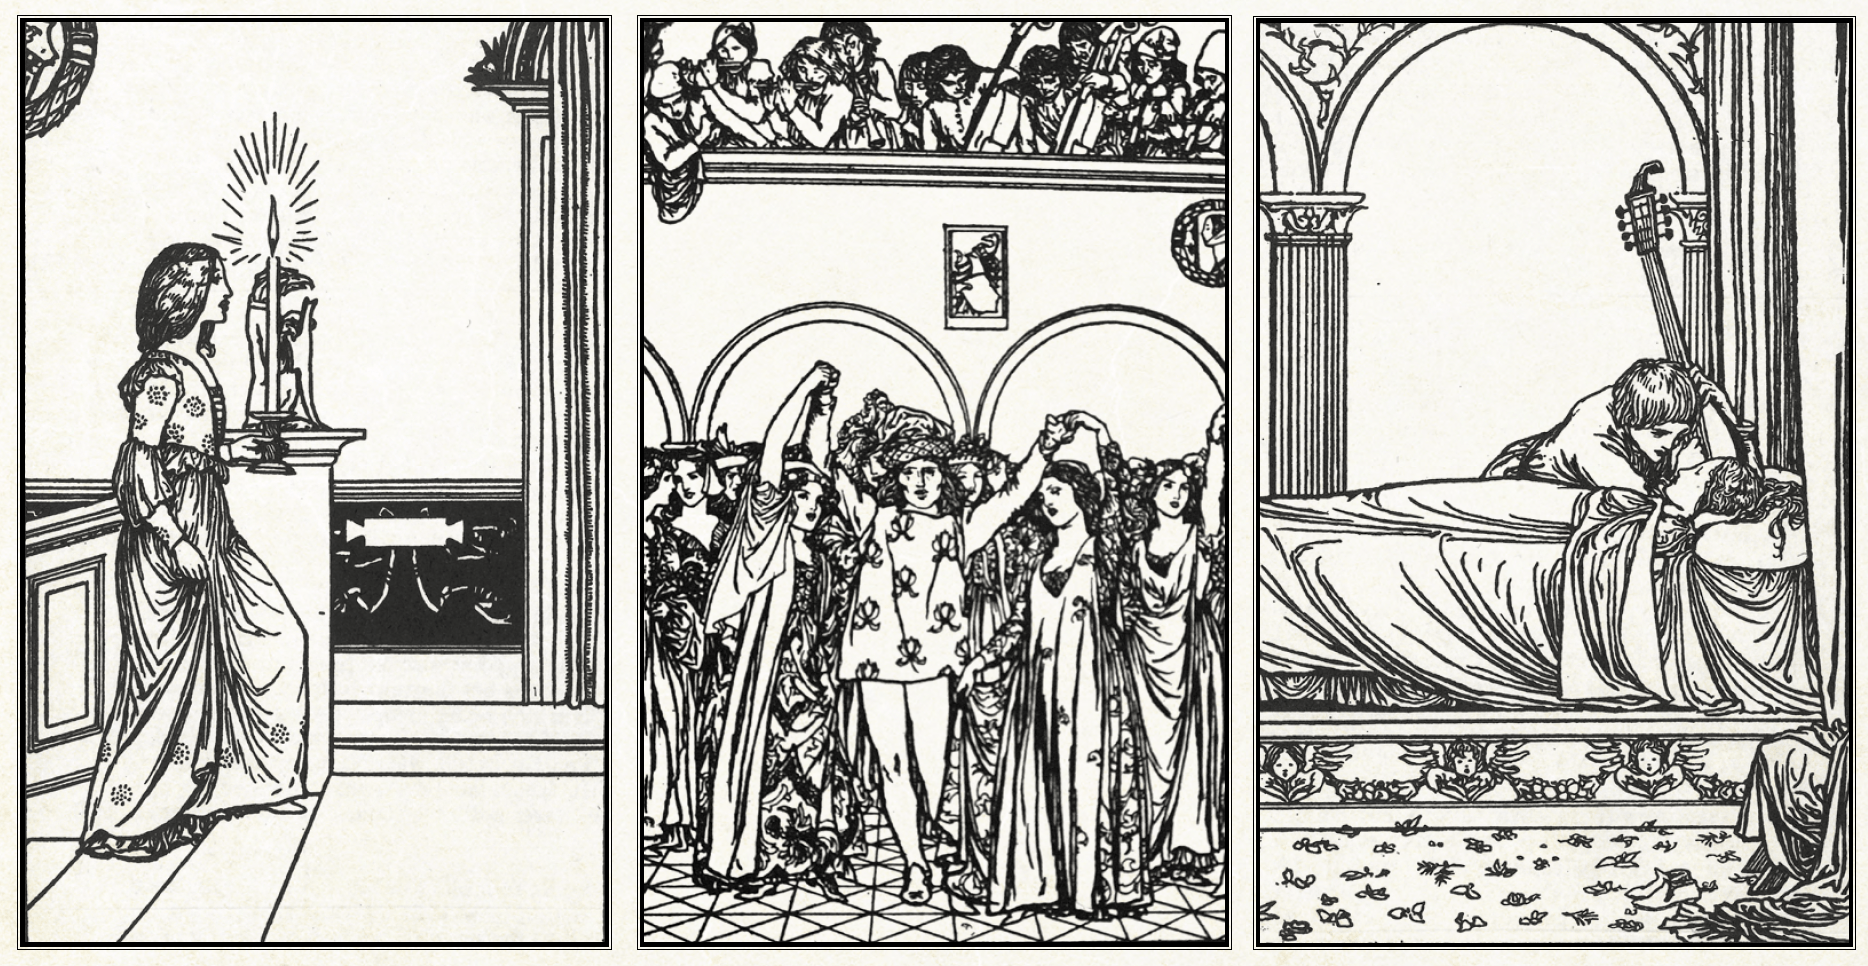 Illustrations by Robert Anning Bell from an 1898 edition of Keats's poetry